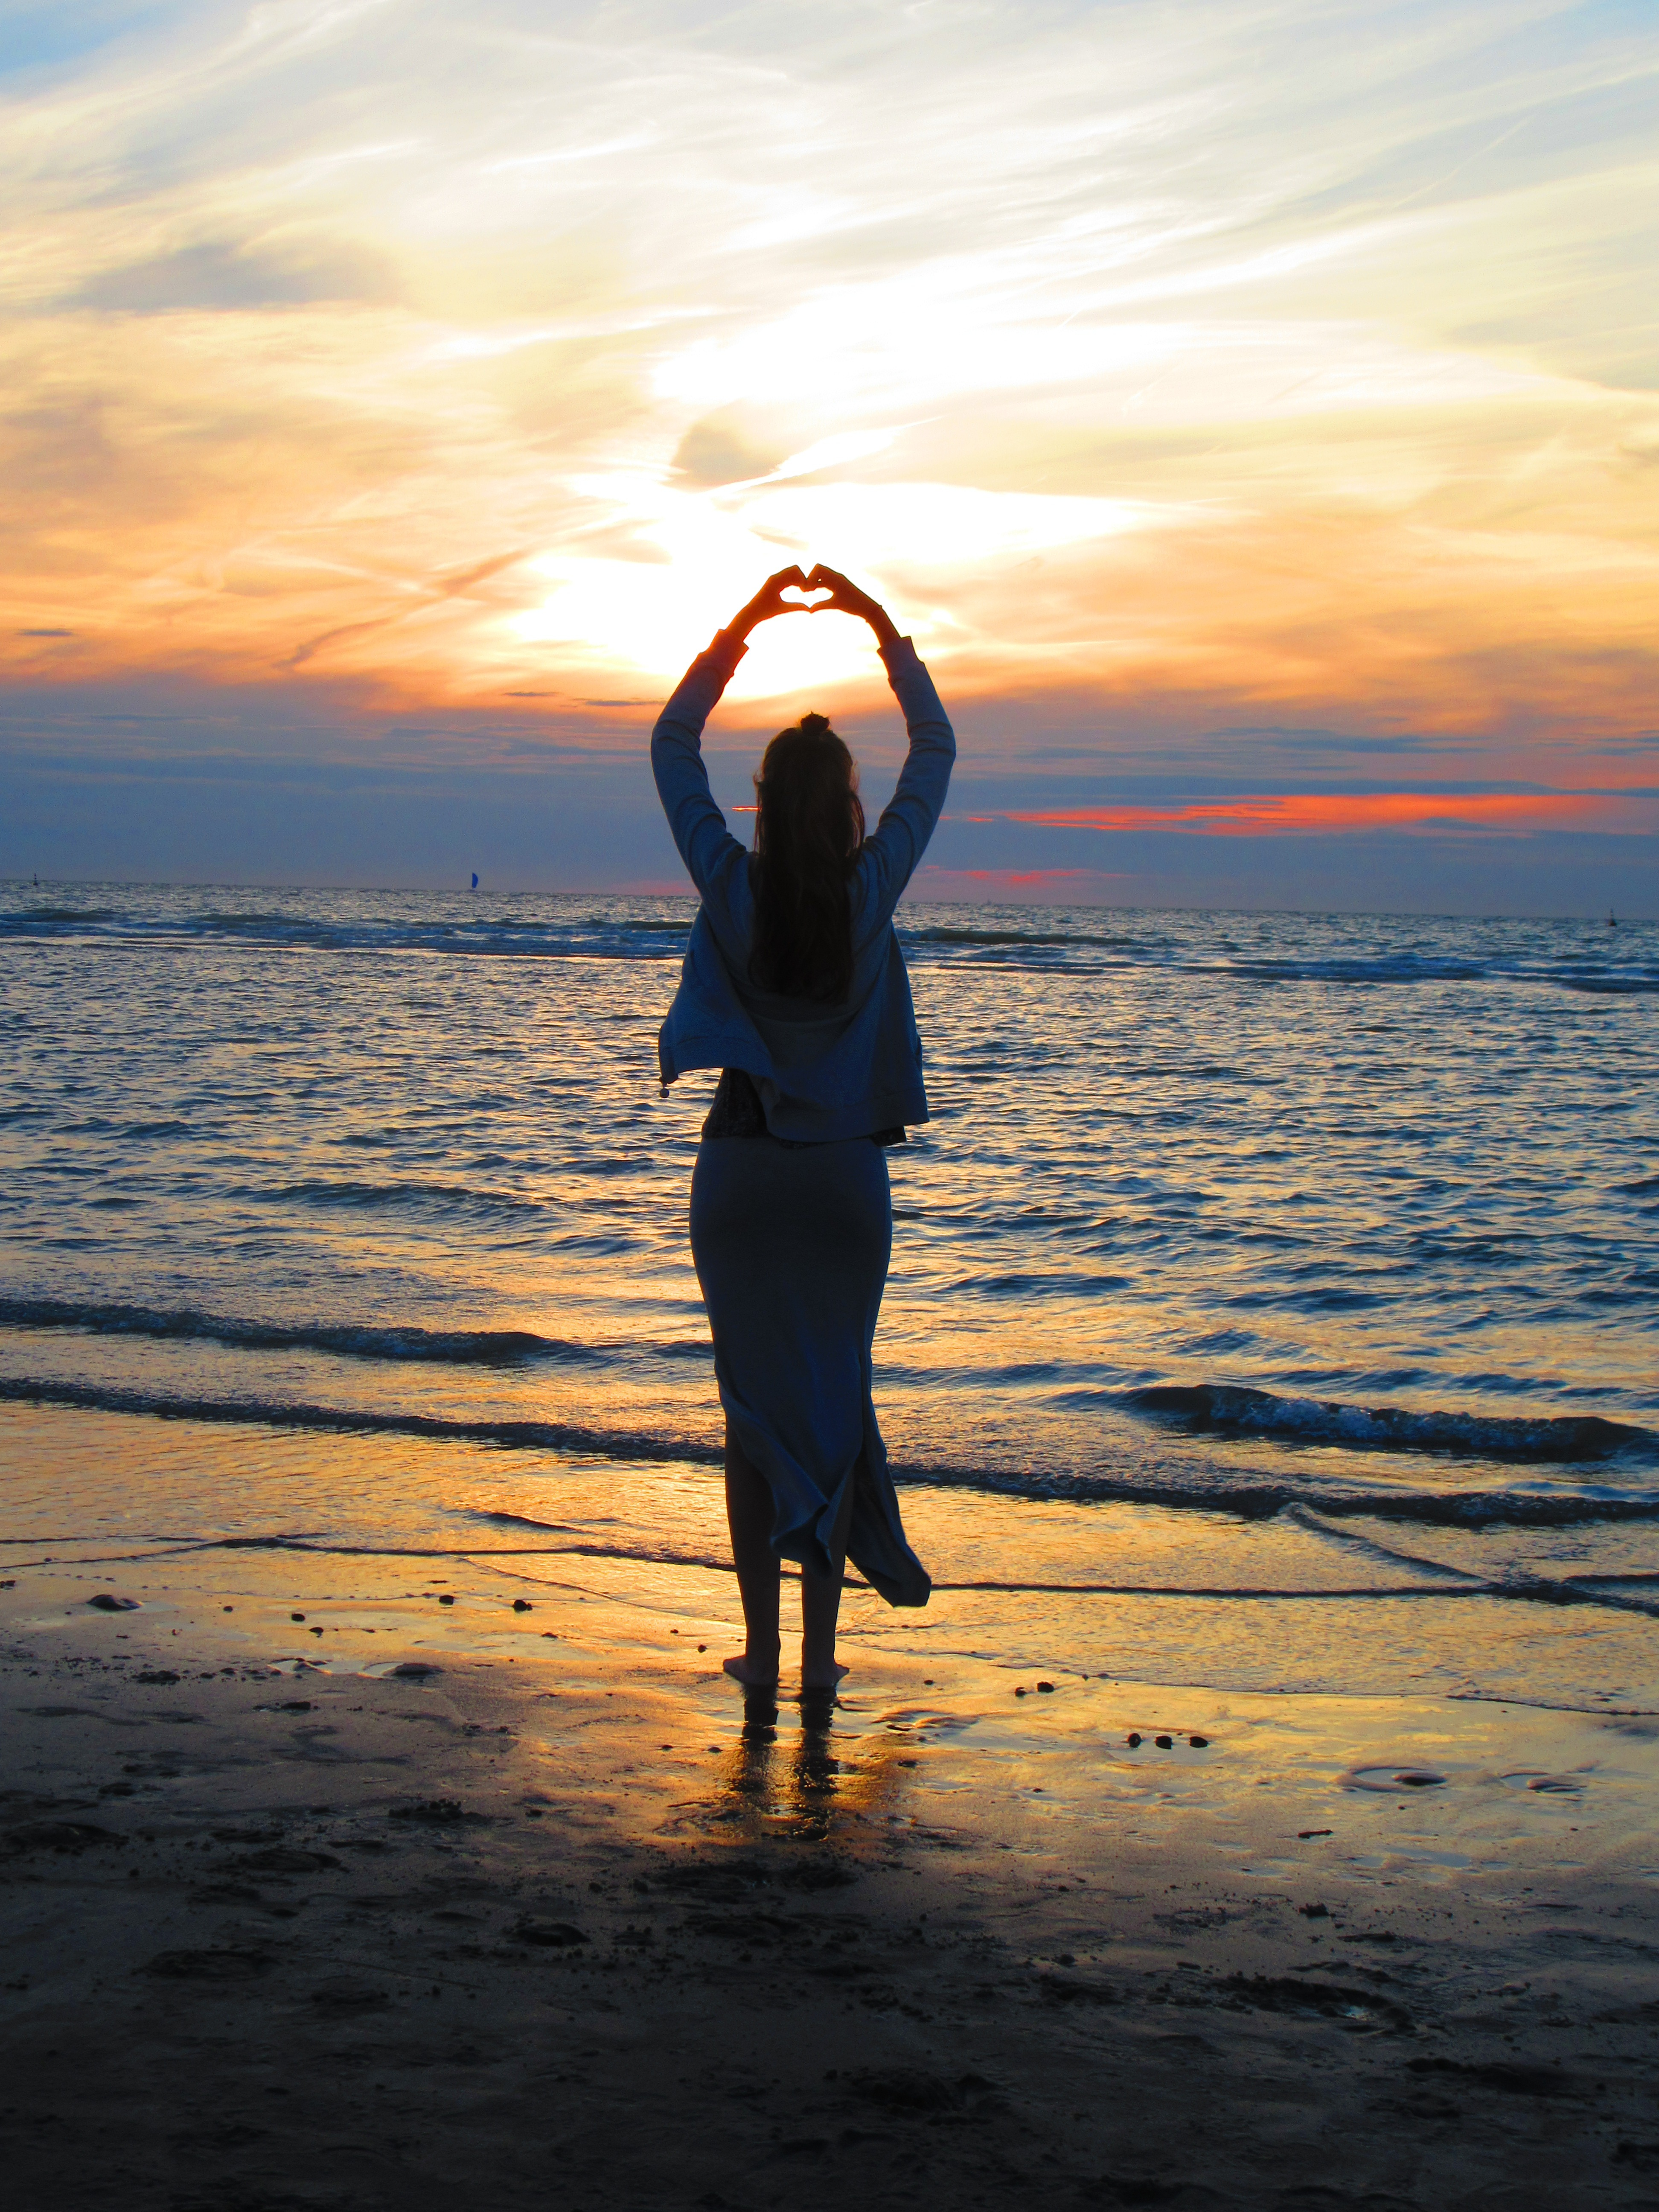 Passion Wallpapers Girl Woman With Arms Up Making Heart Sign While Standing On